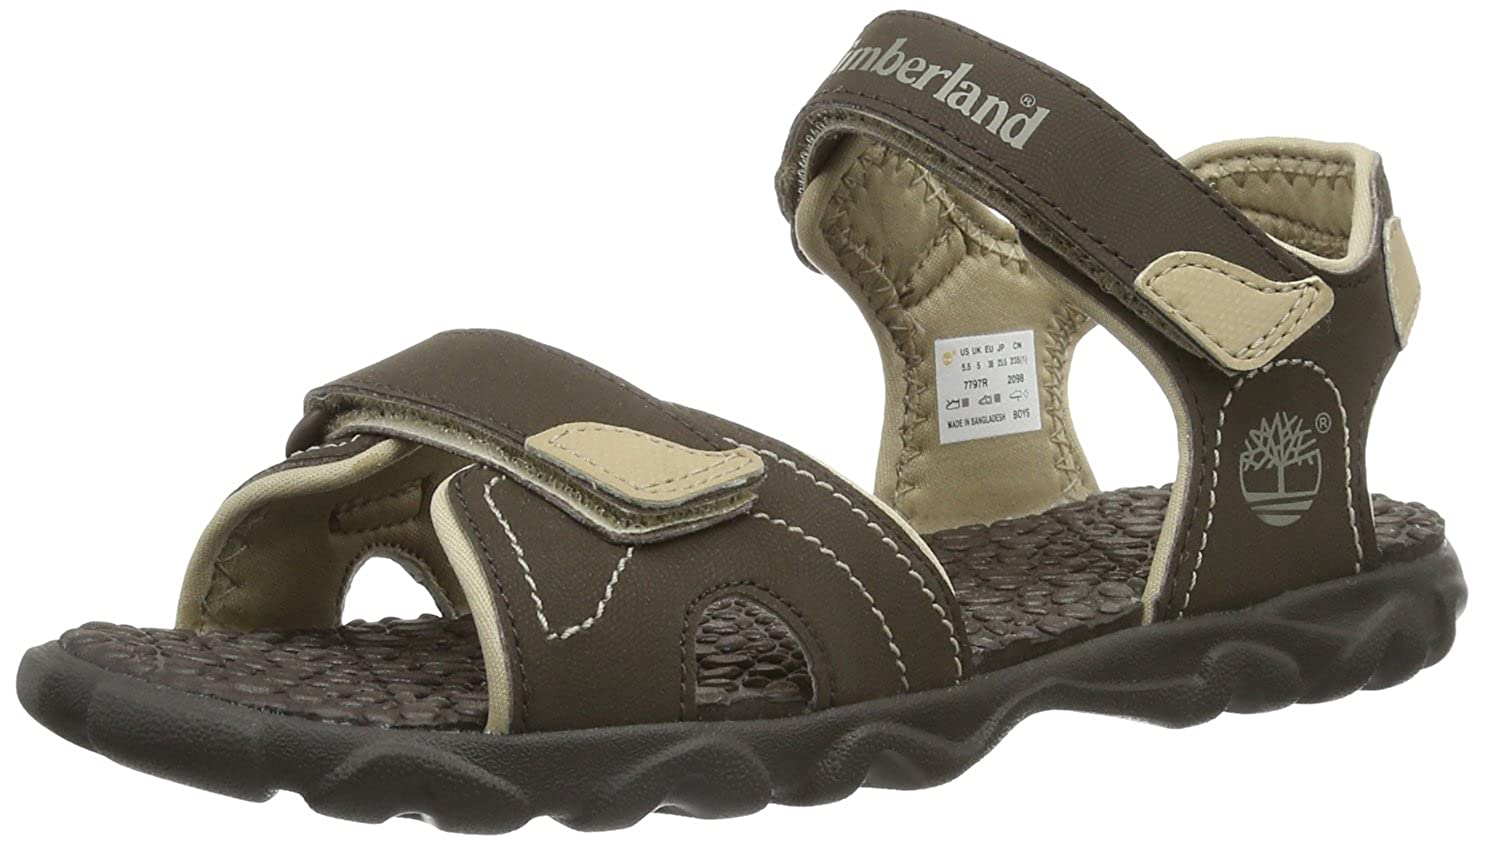 Timberland Boys' Splashtown 2 Strap Sandal Fashion Sandals 4.5 Child UK 21 EU C77X7R